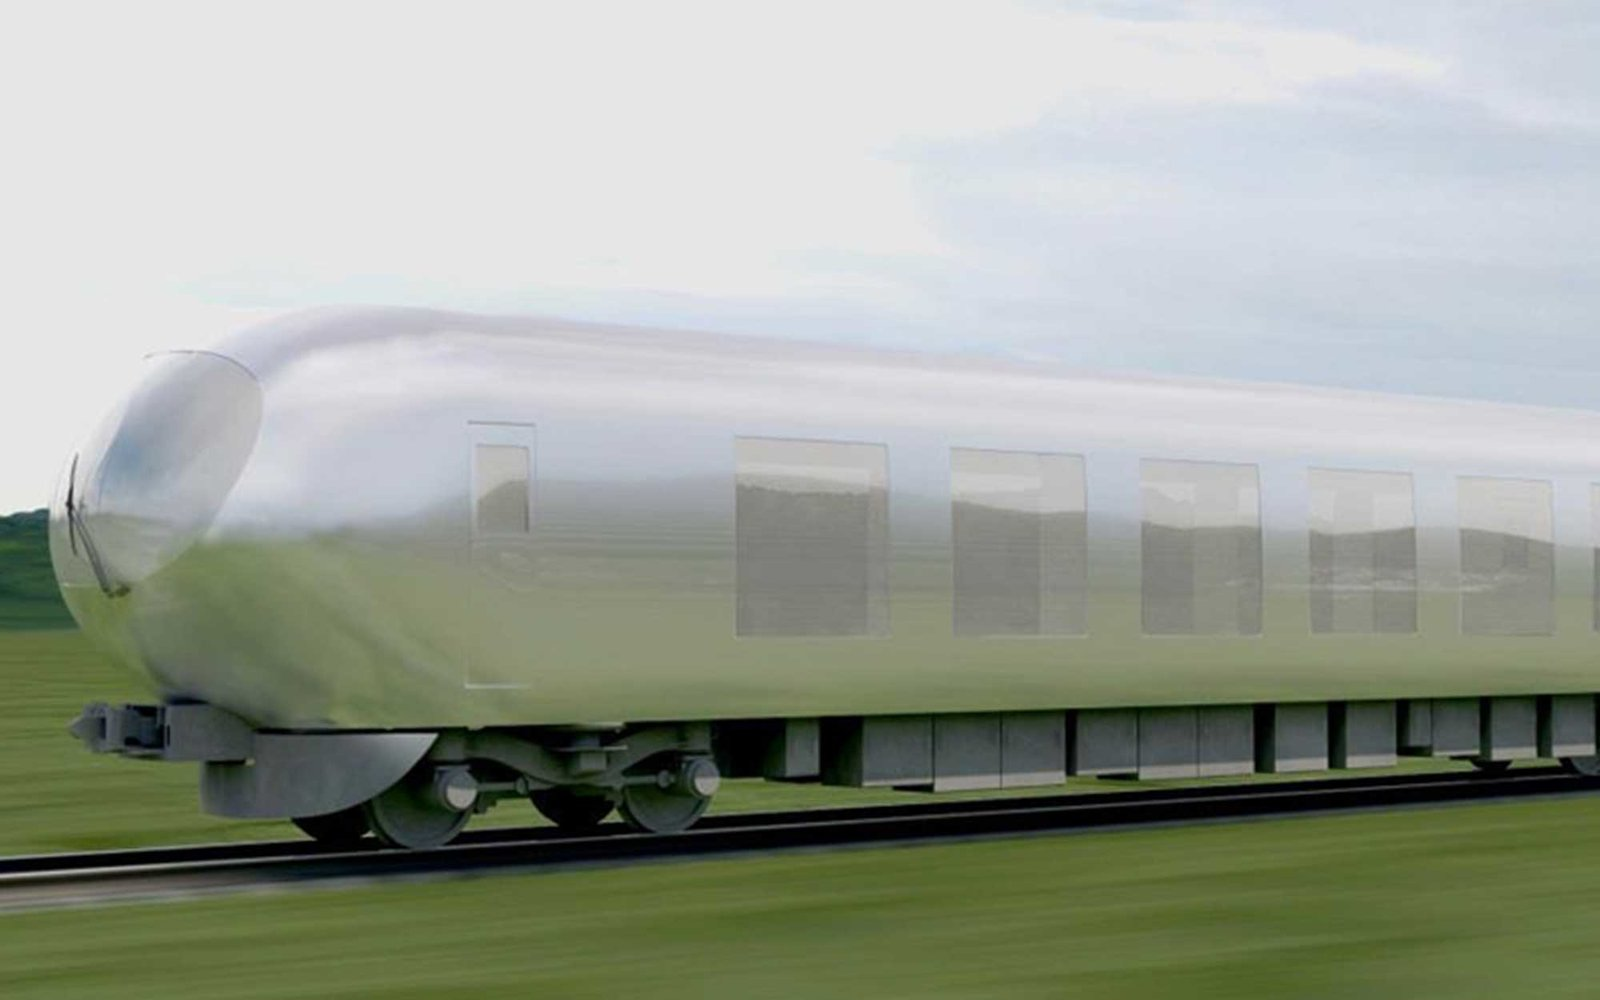 Drawn railroad japanese Travel 'Invisible' Plans train on